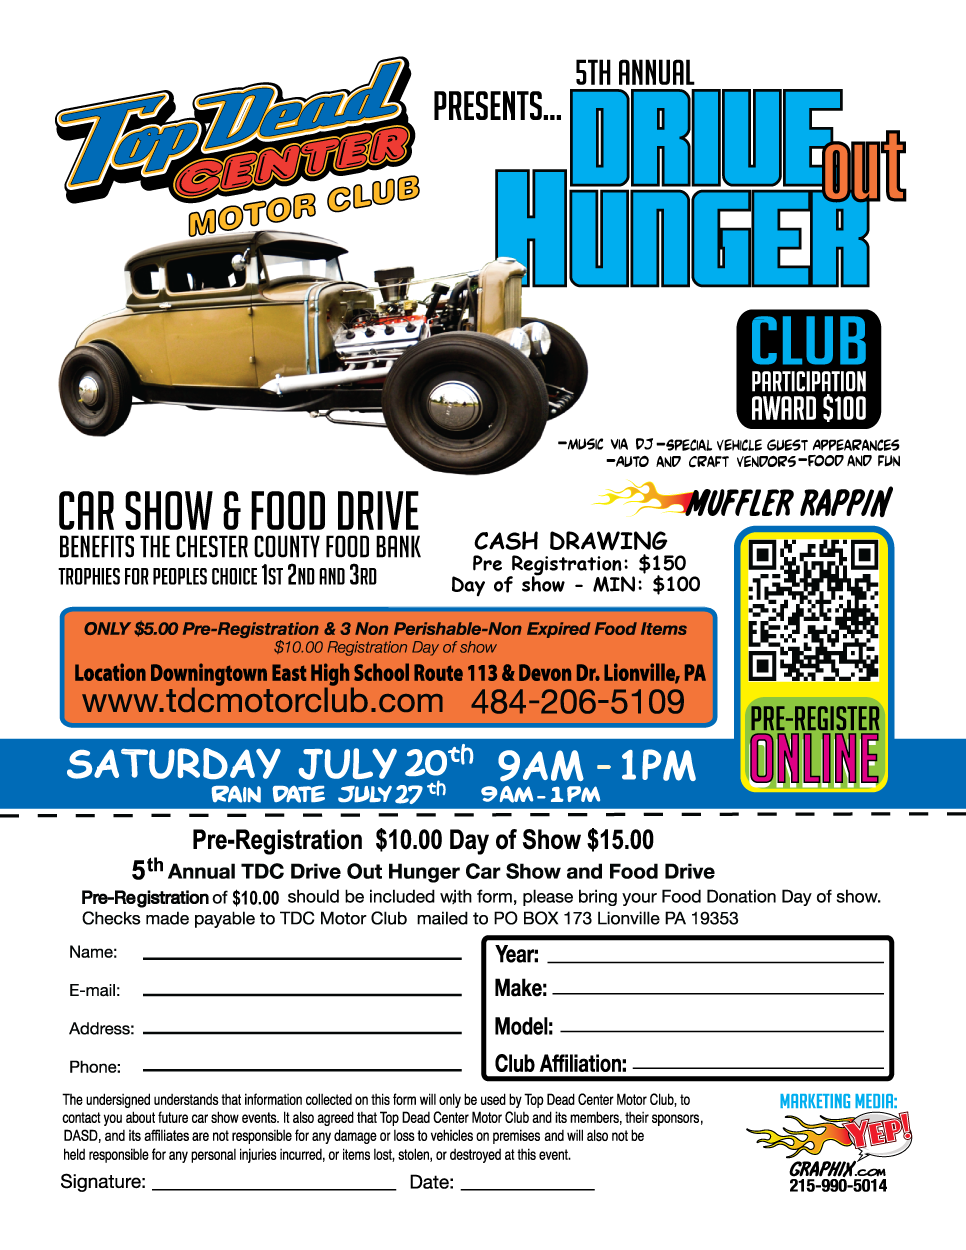 Th Annual Drive Out Hunger CarShow FoodDrive Find More Events - Car show event calendar